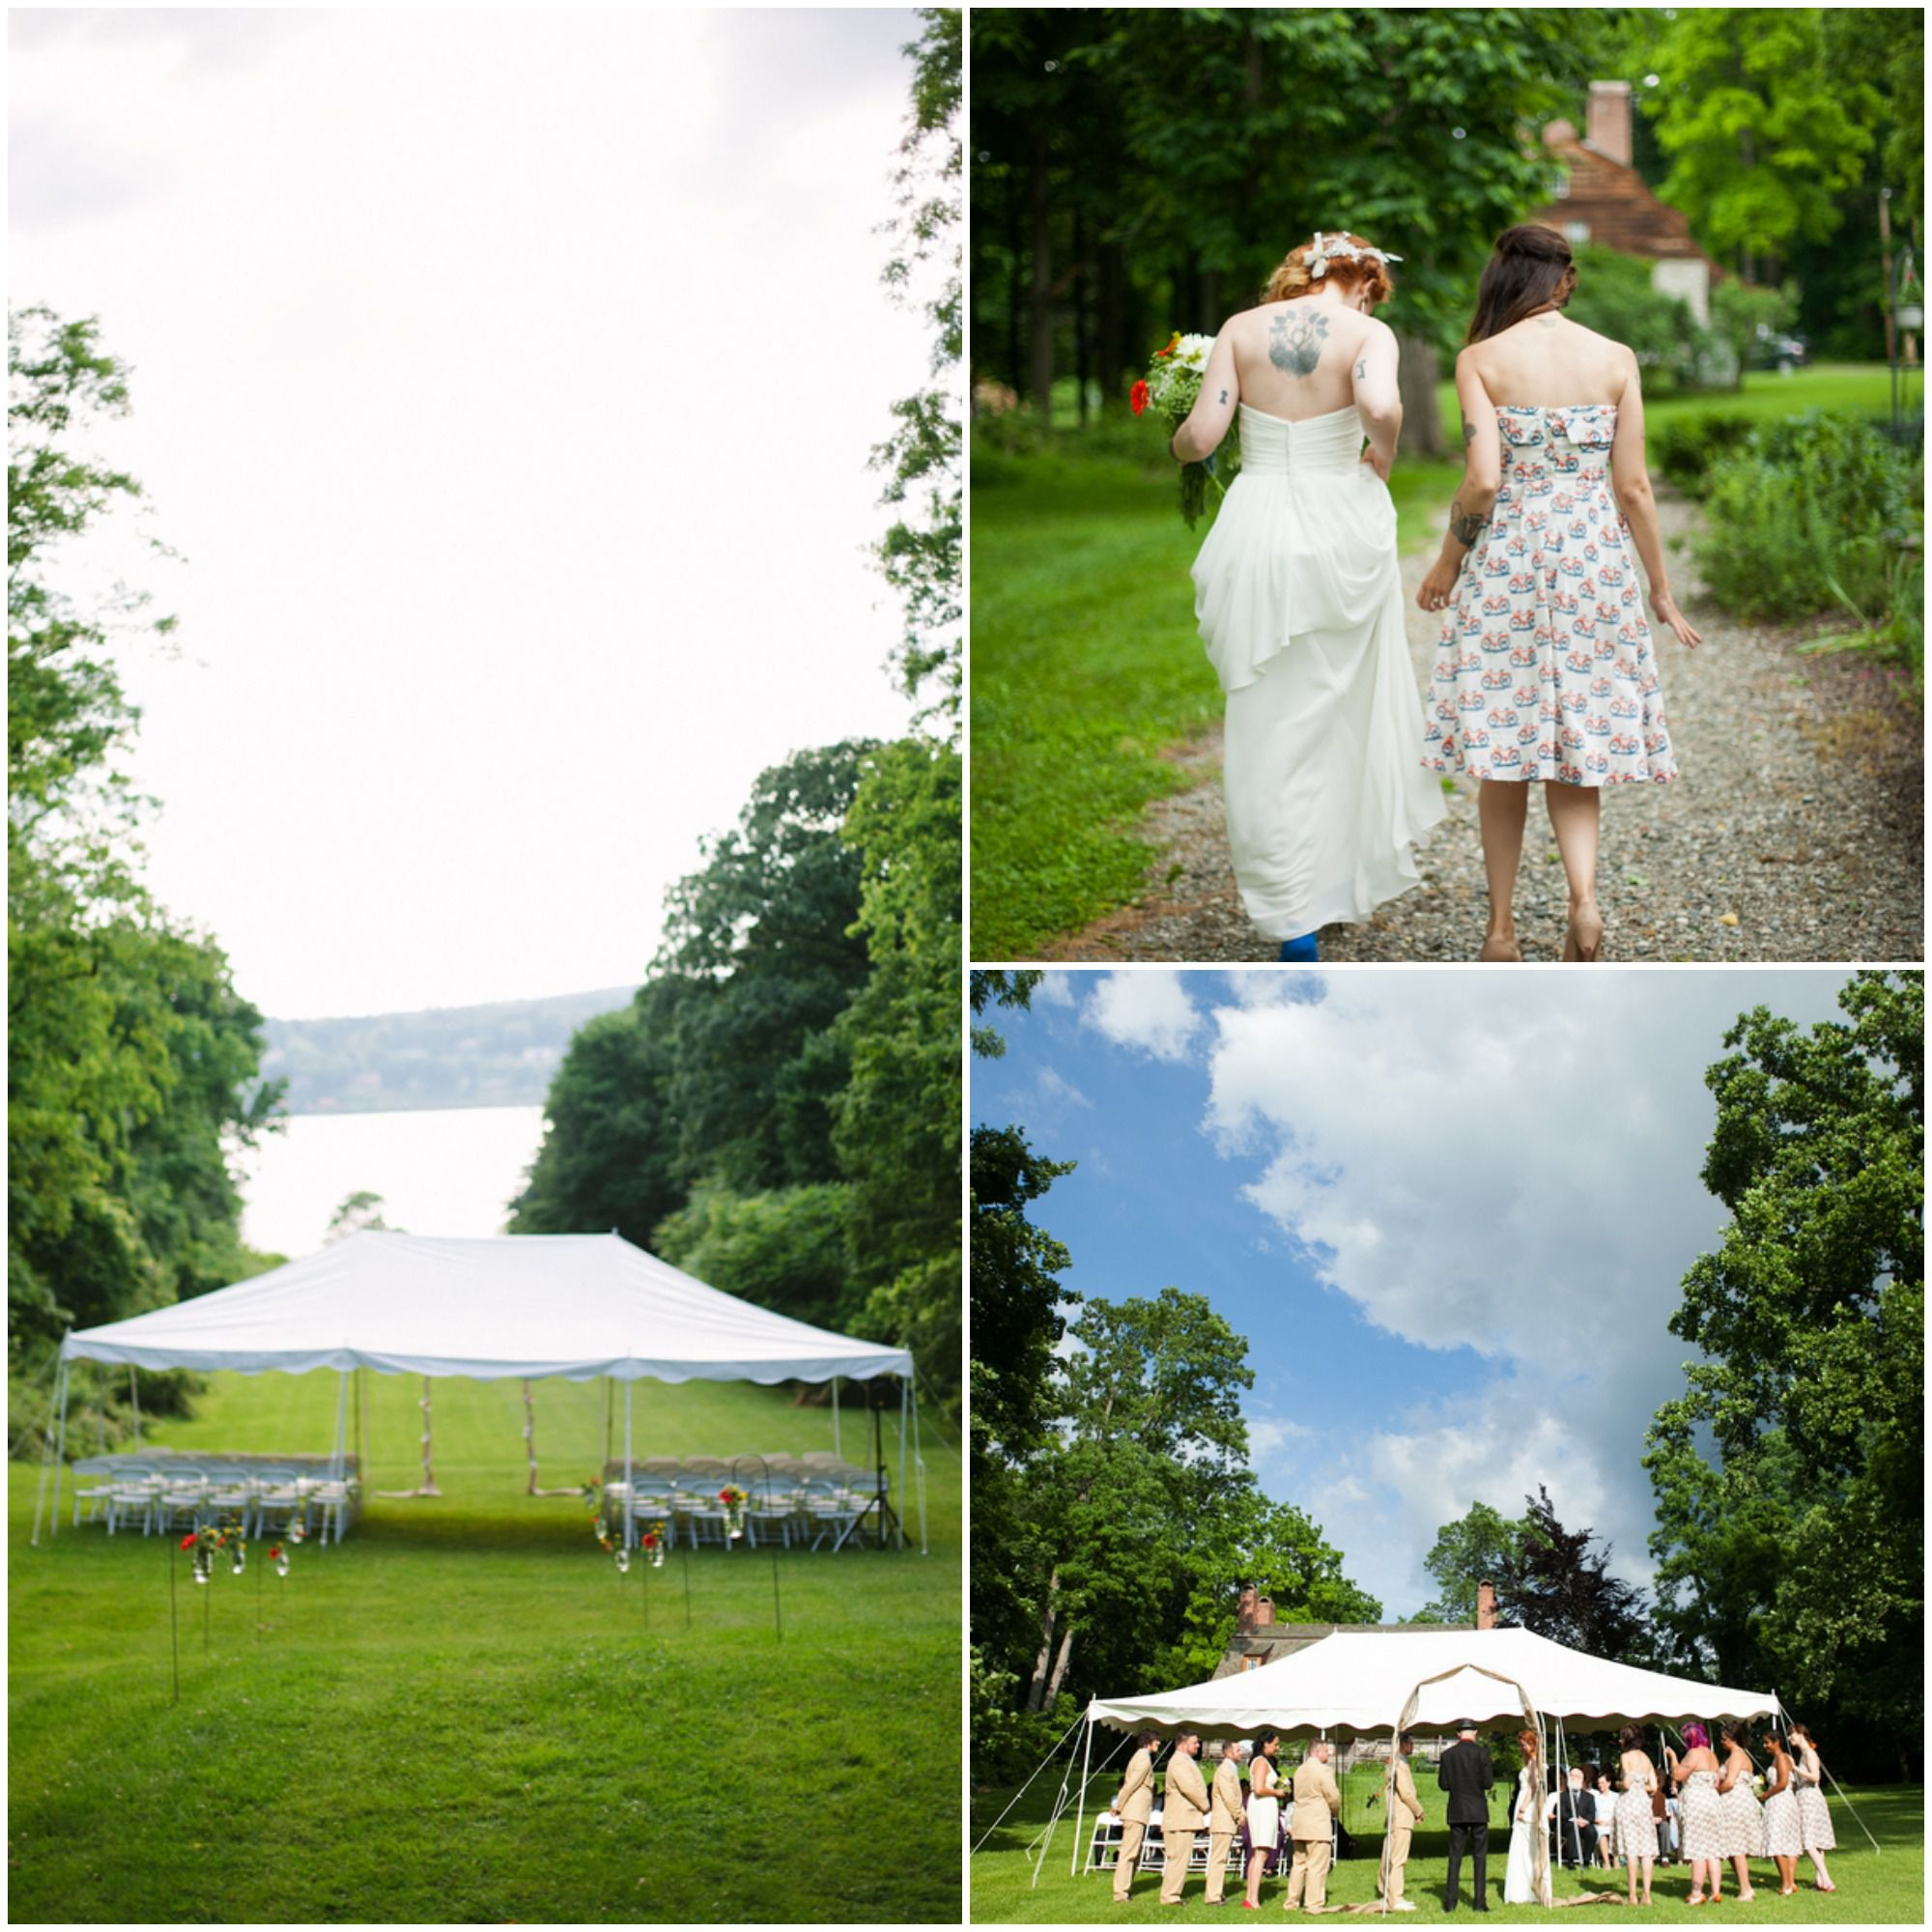 Wedding Venues White River: Hudson River Valley Barn Wedding